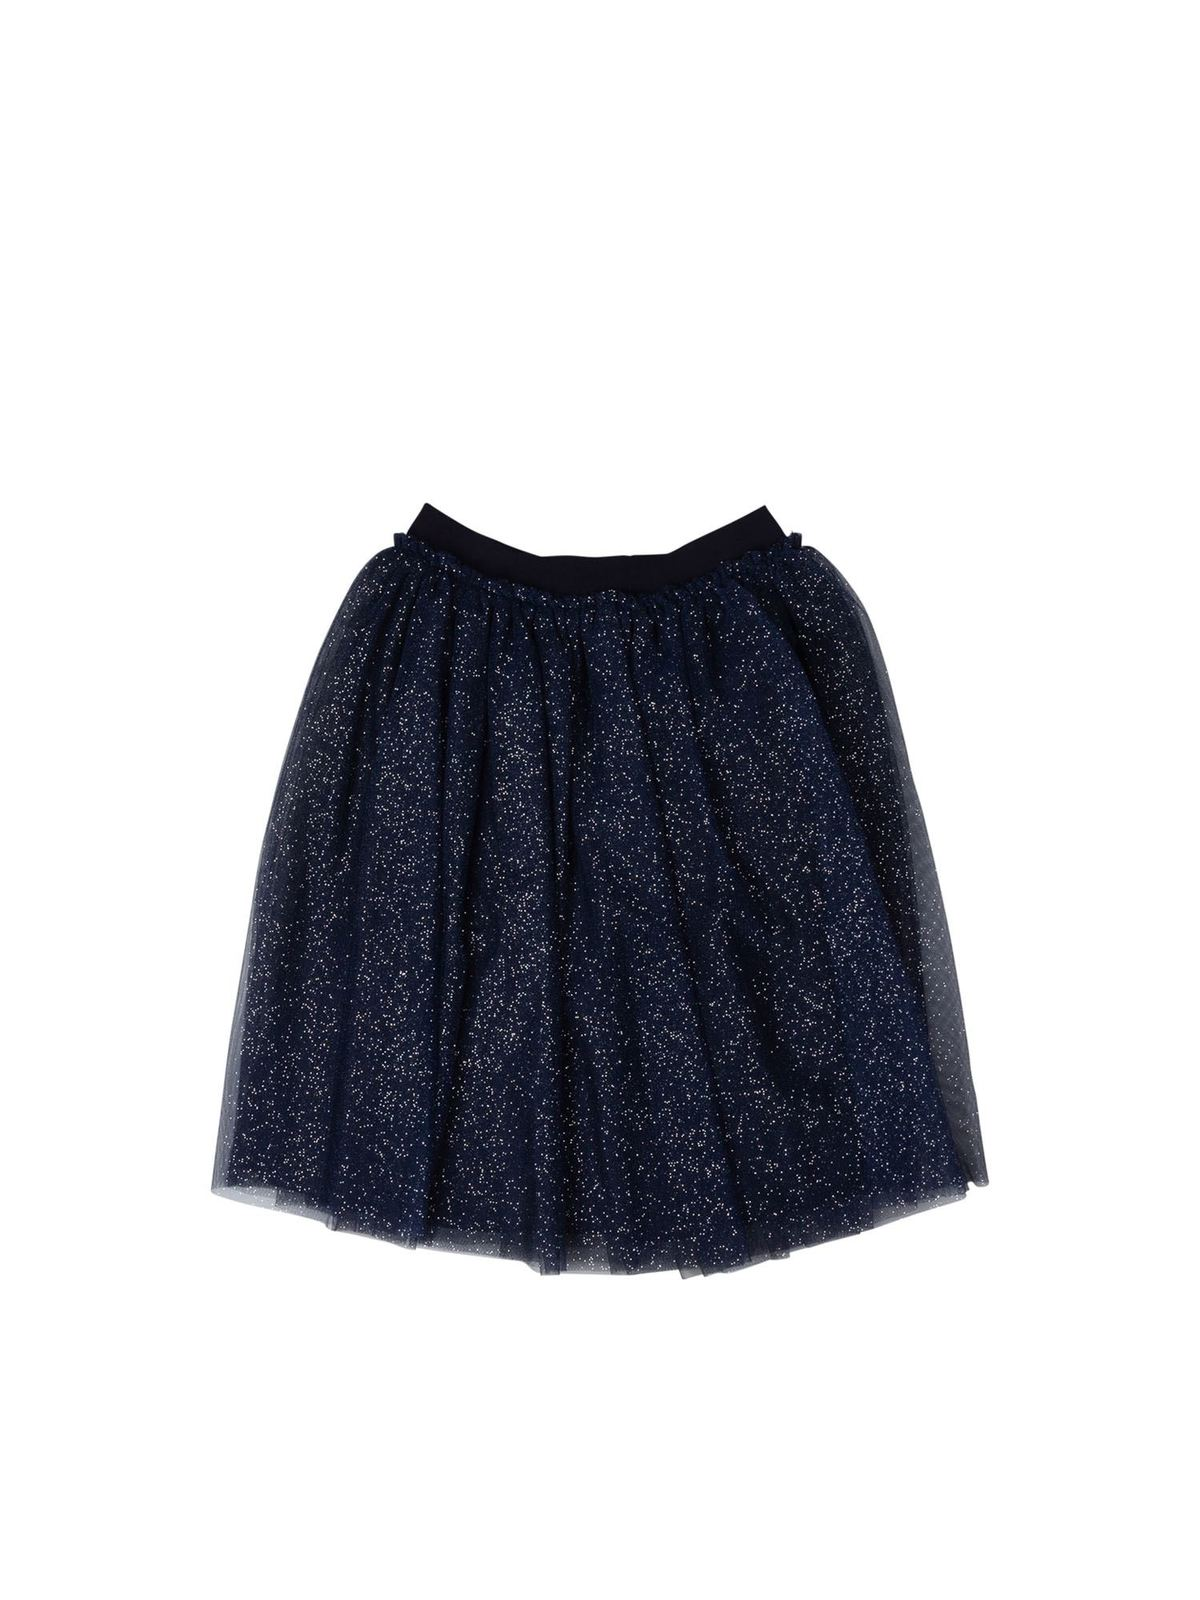 IL GUFO LAME SKIRT IN BLUE